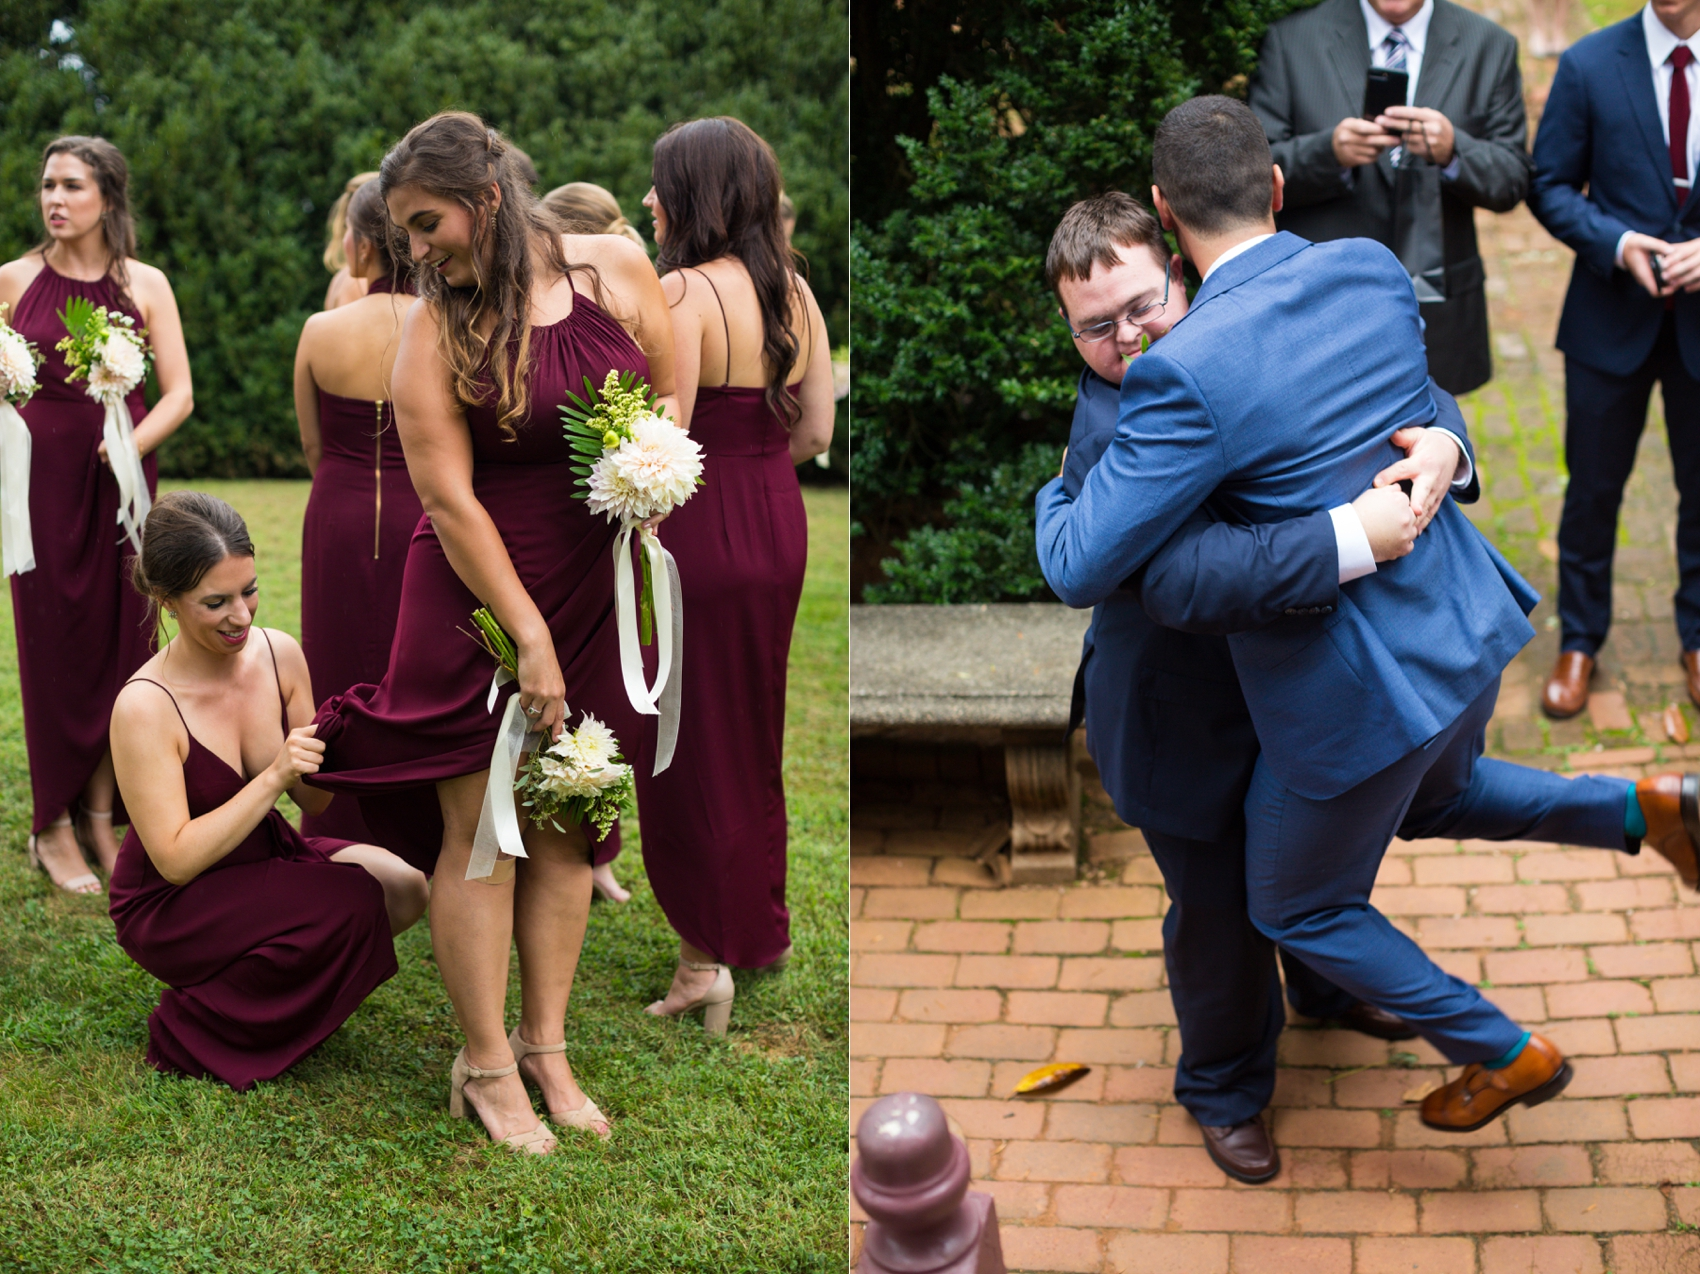 Ashlawn-Highland-Virginia-Wedding-2018-0303.jpg